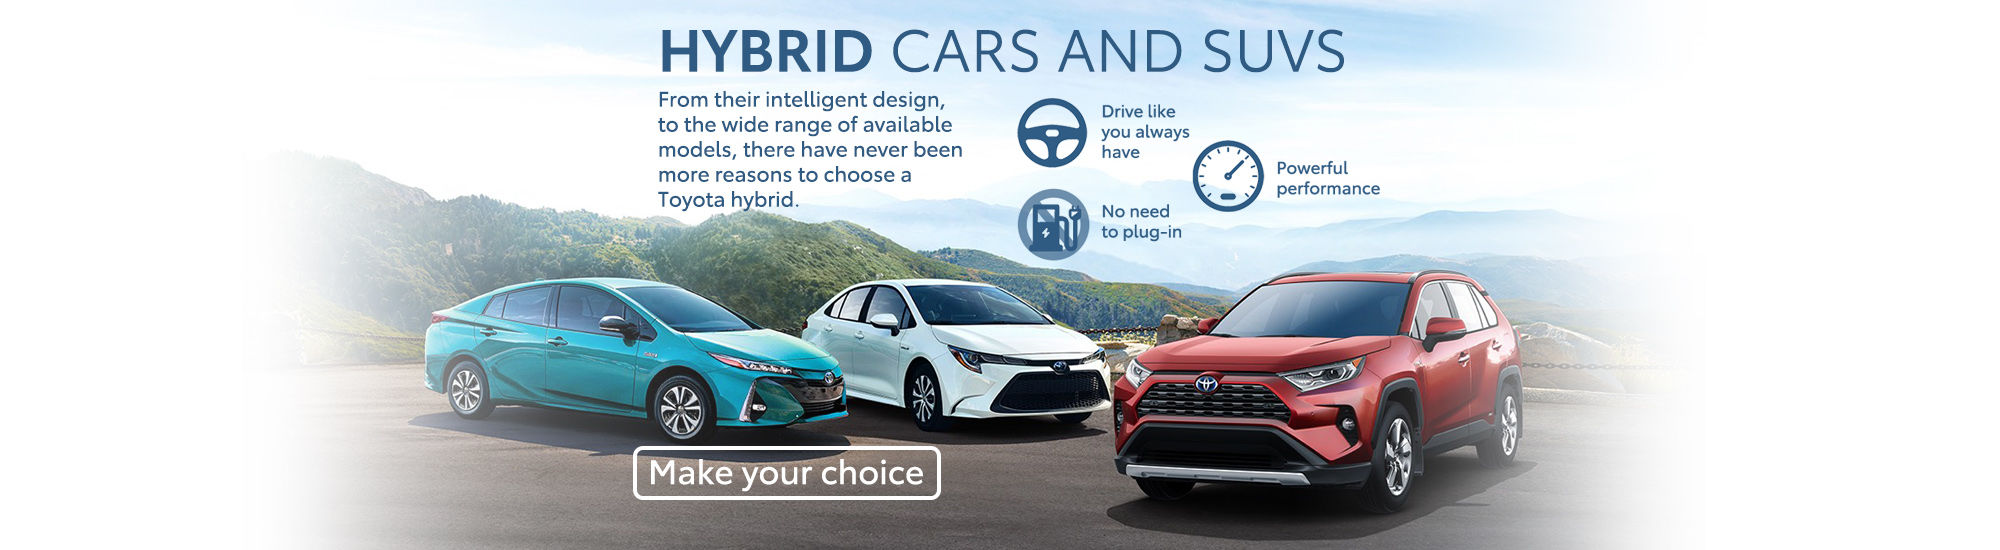 Hybrid cars and SUVS Toyota